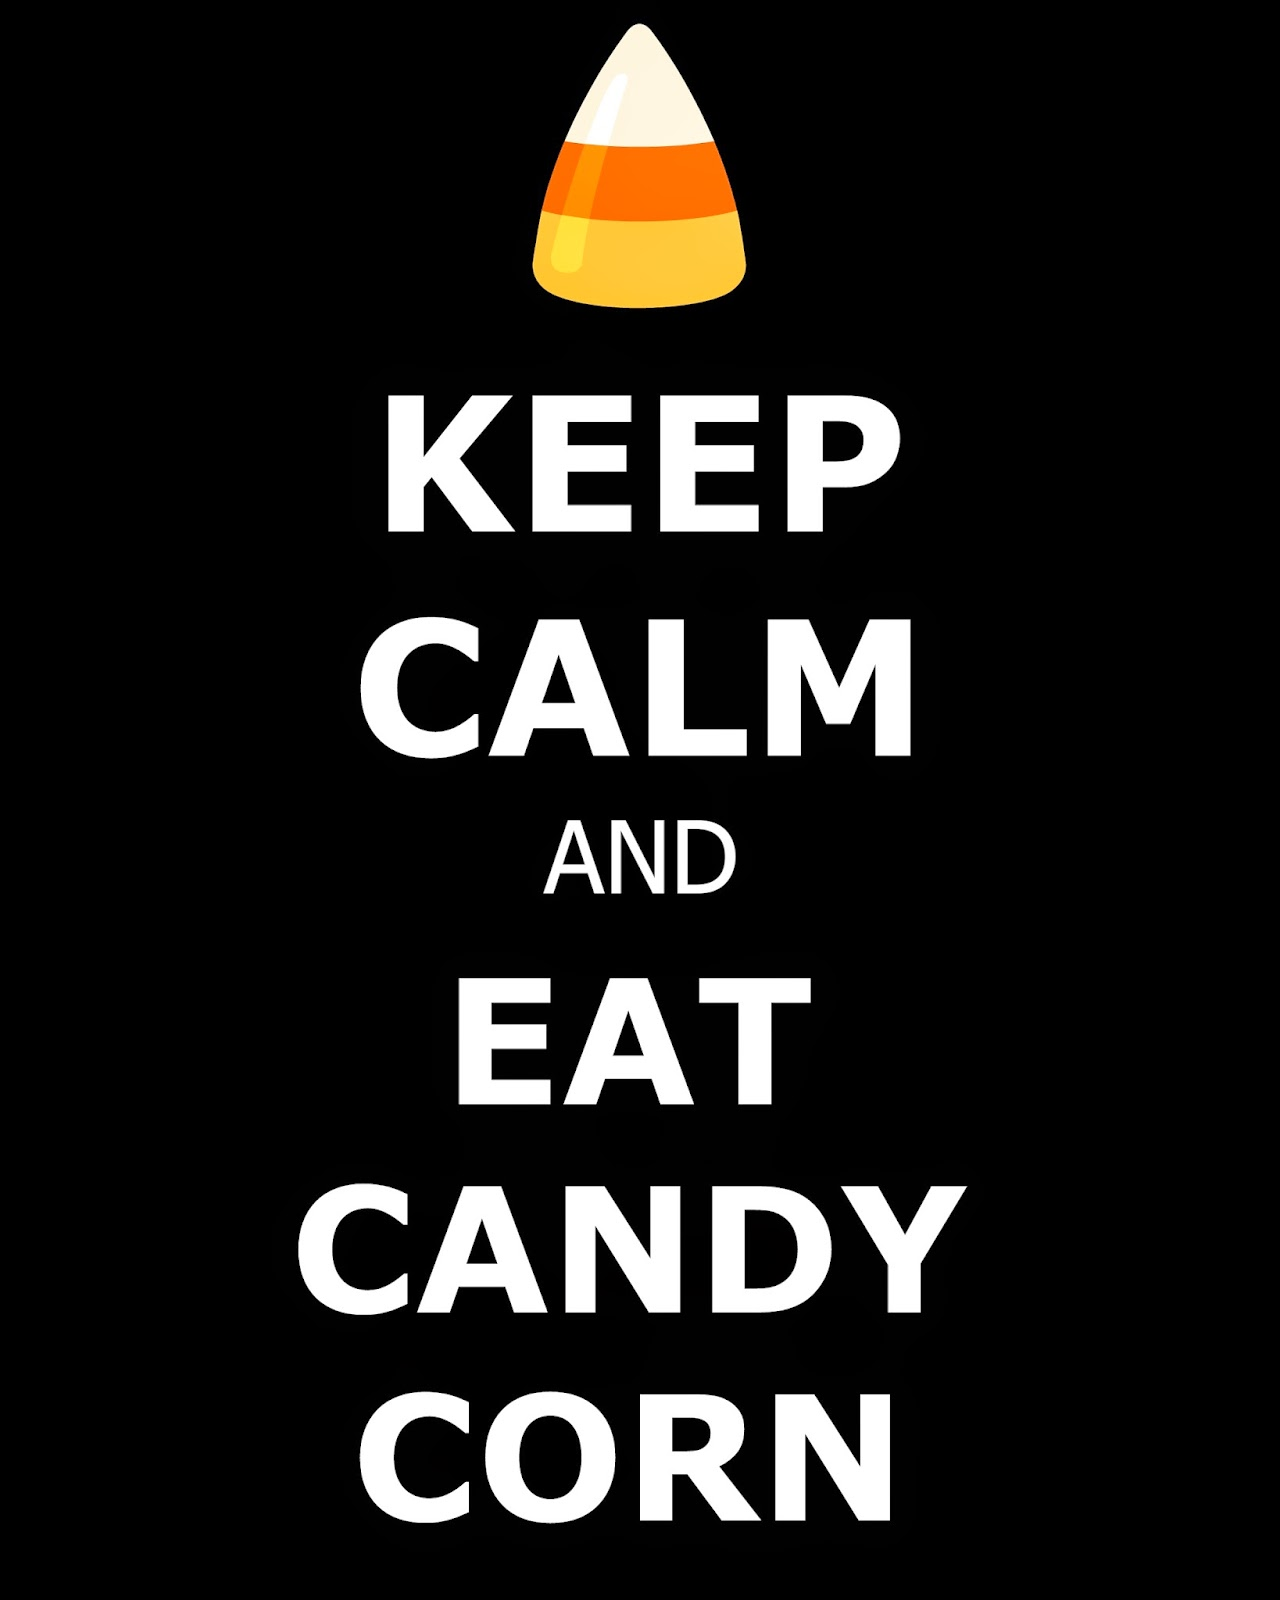 Keep Calm and Eat Candy Corn FREE Printable